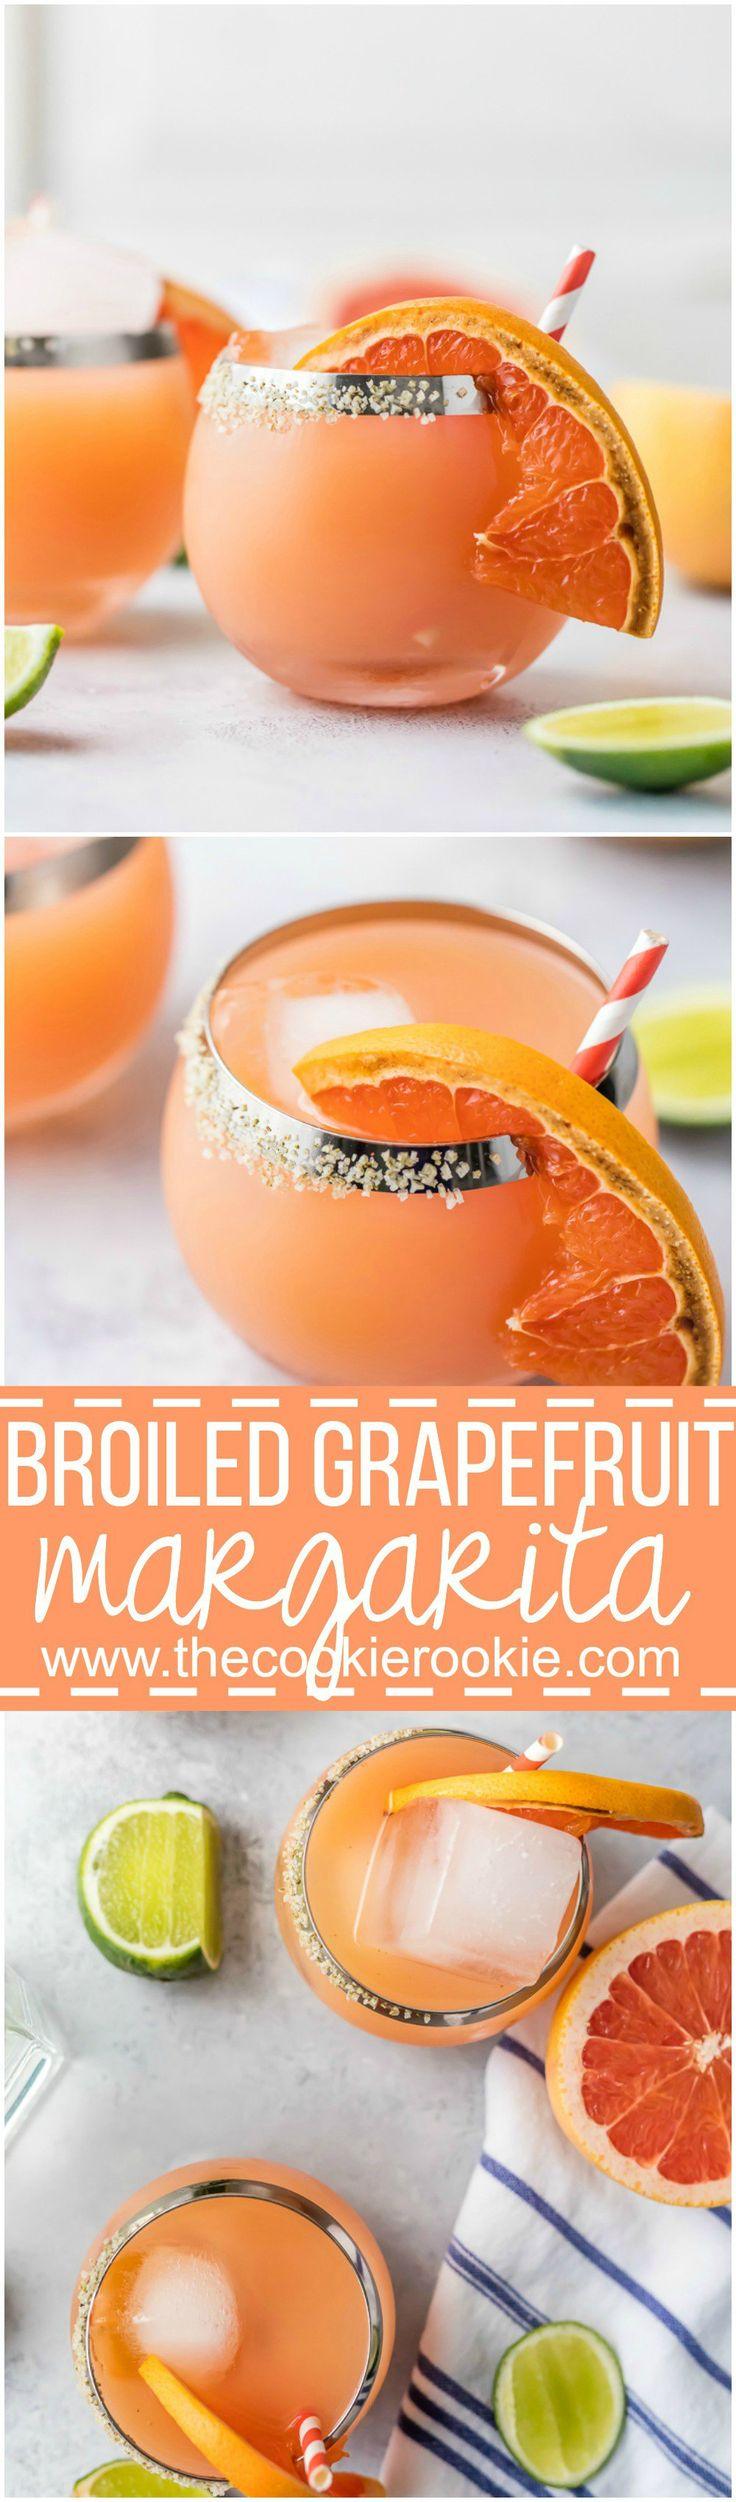 Cheers to Summer with a BROILED GRAPEFRUIT MARGARITA! The perfect combination of flavors for a great tangy sweet refreshing margarita perfect for any Summer day!